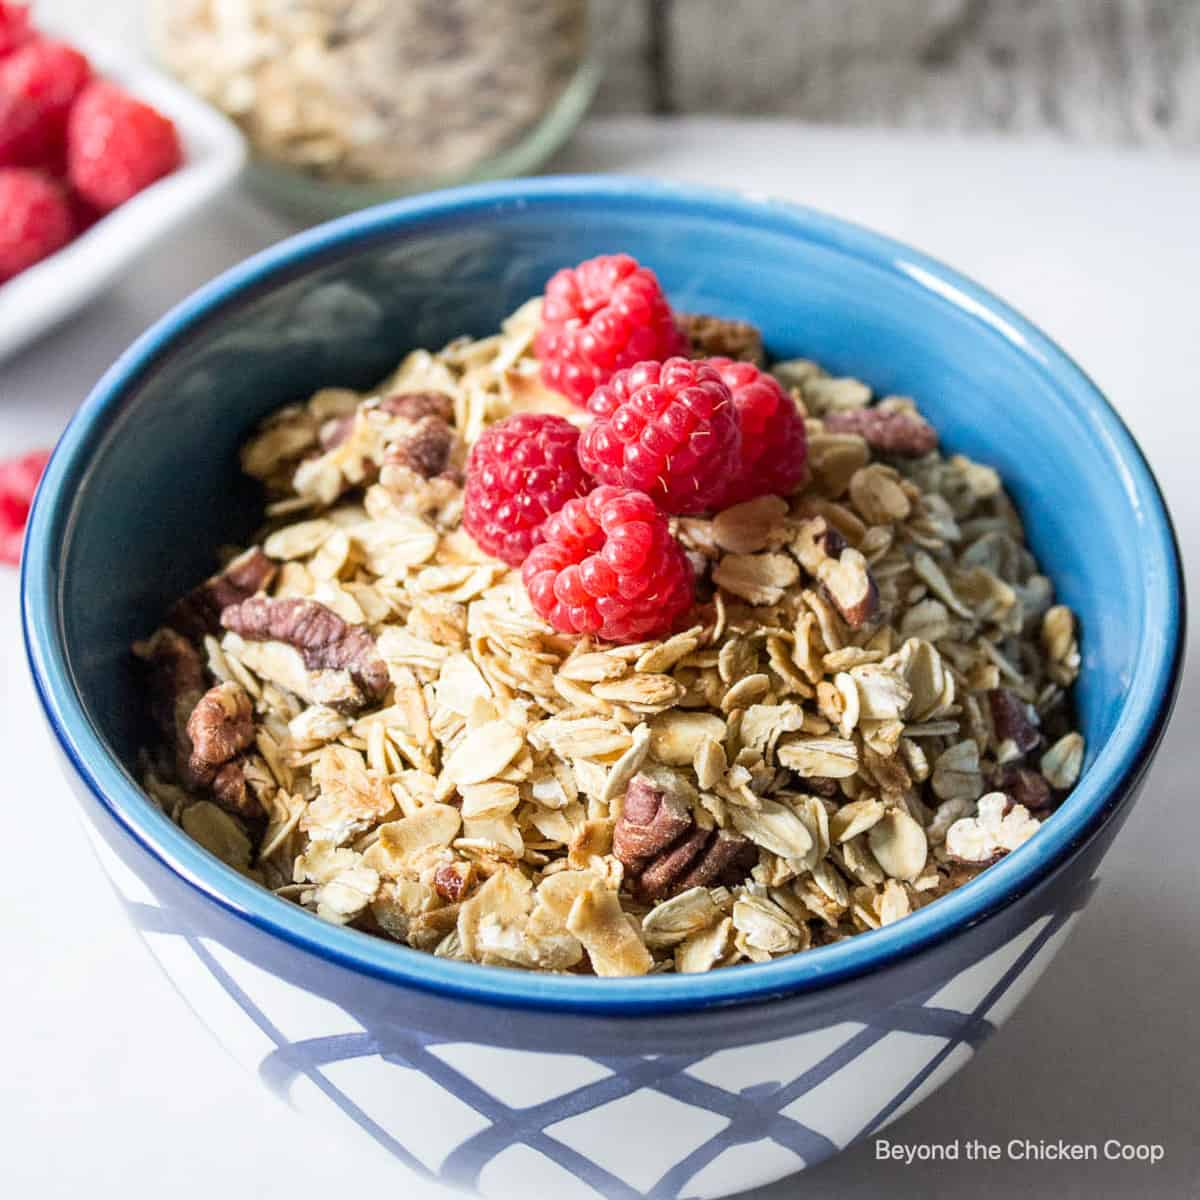 Granola with pecans and topped with fresh raspberries.